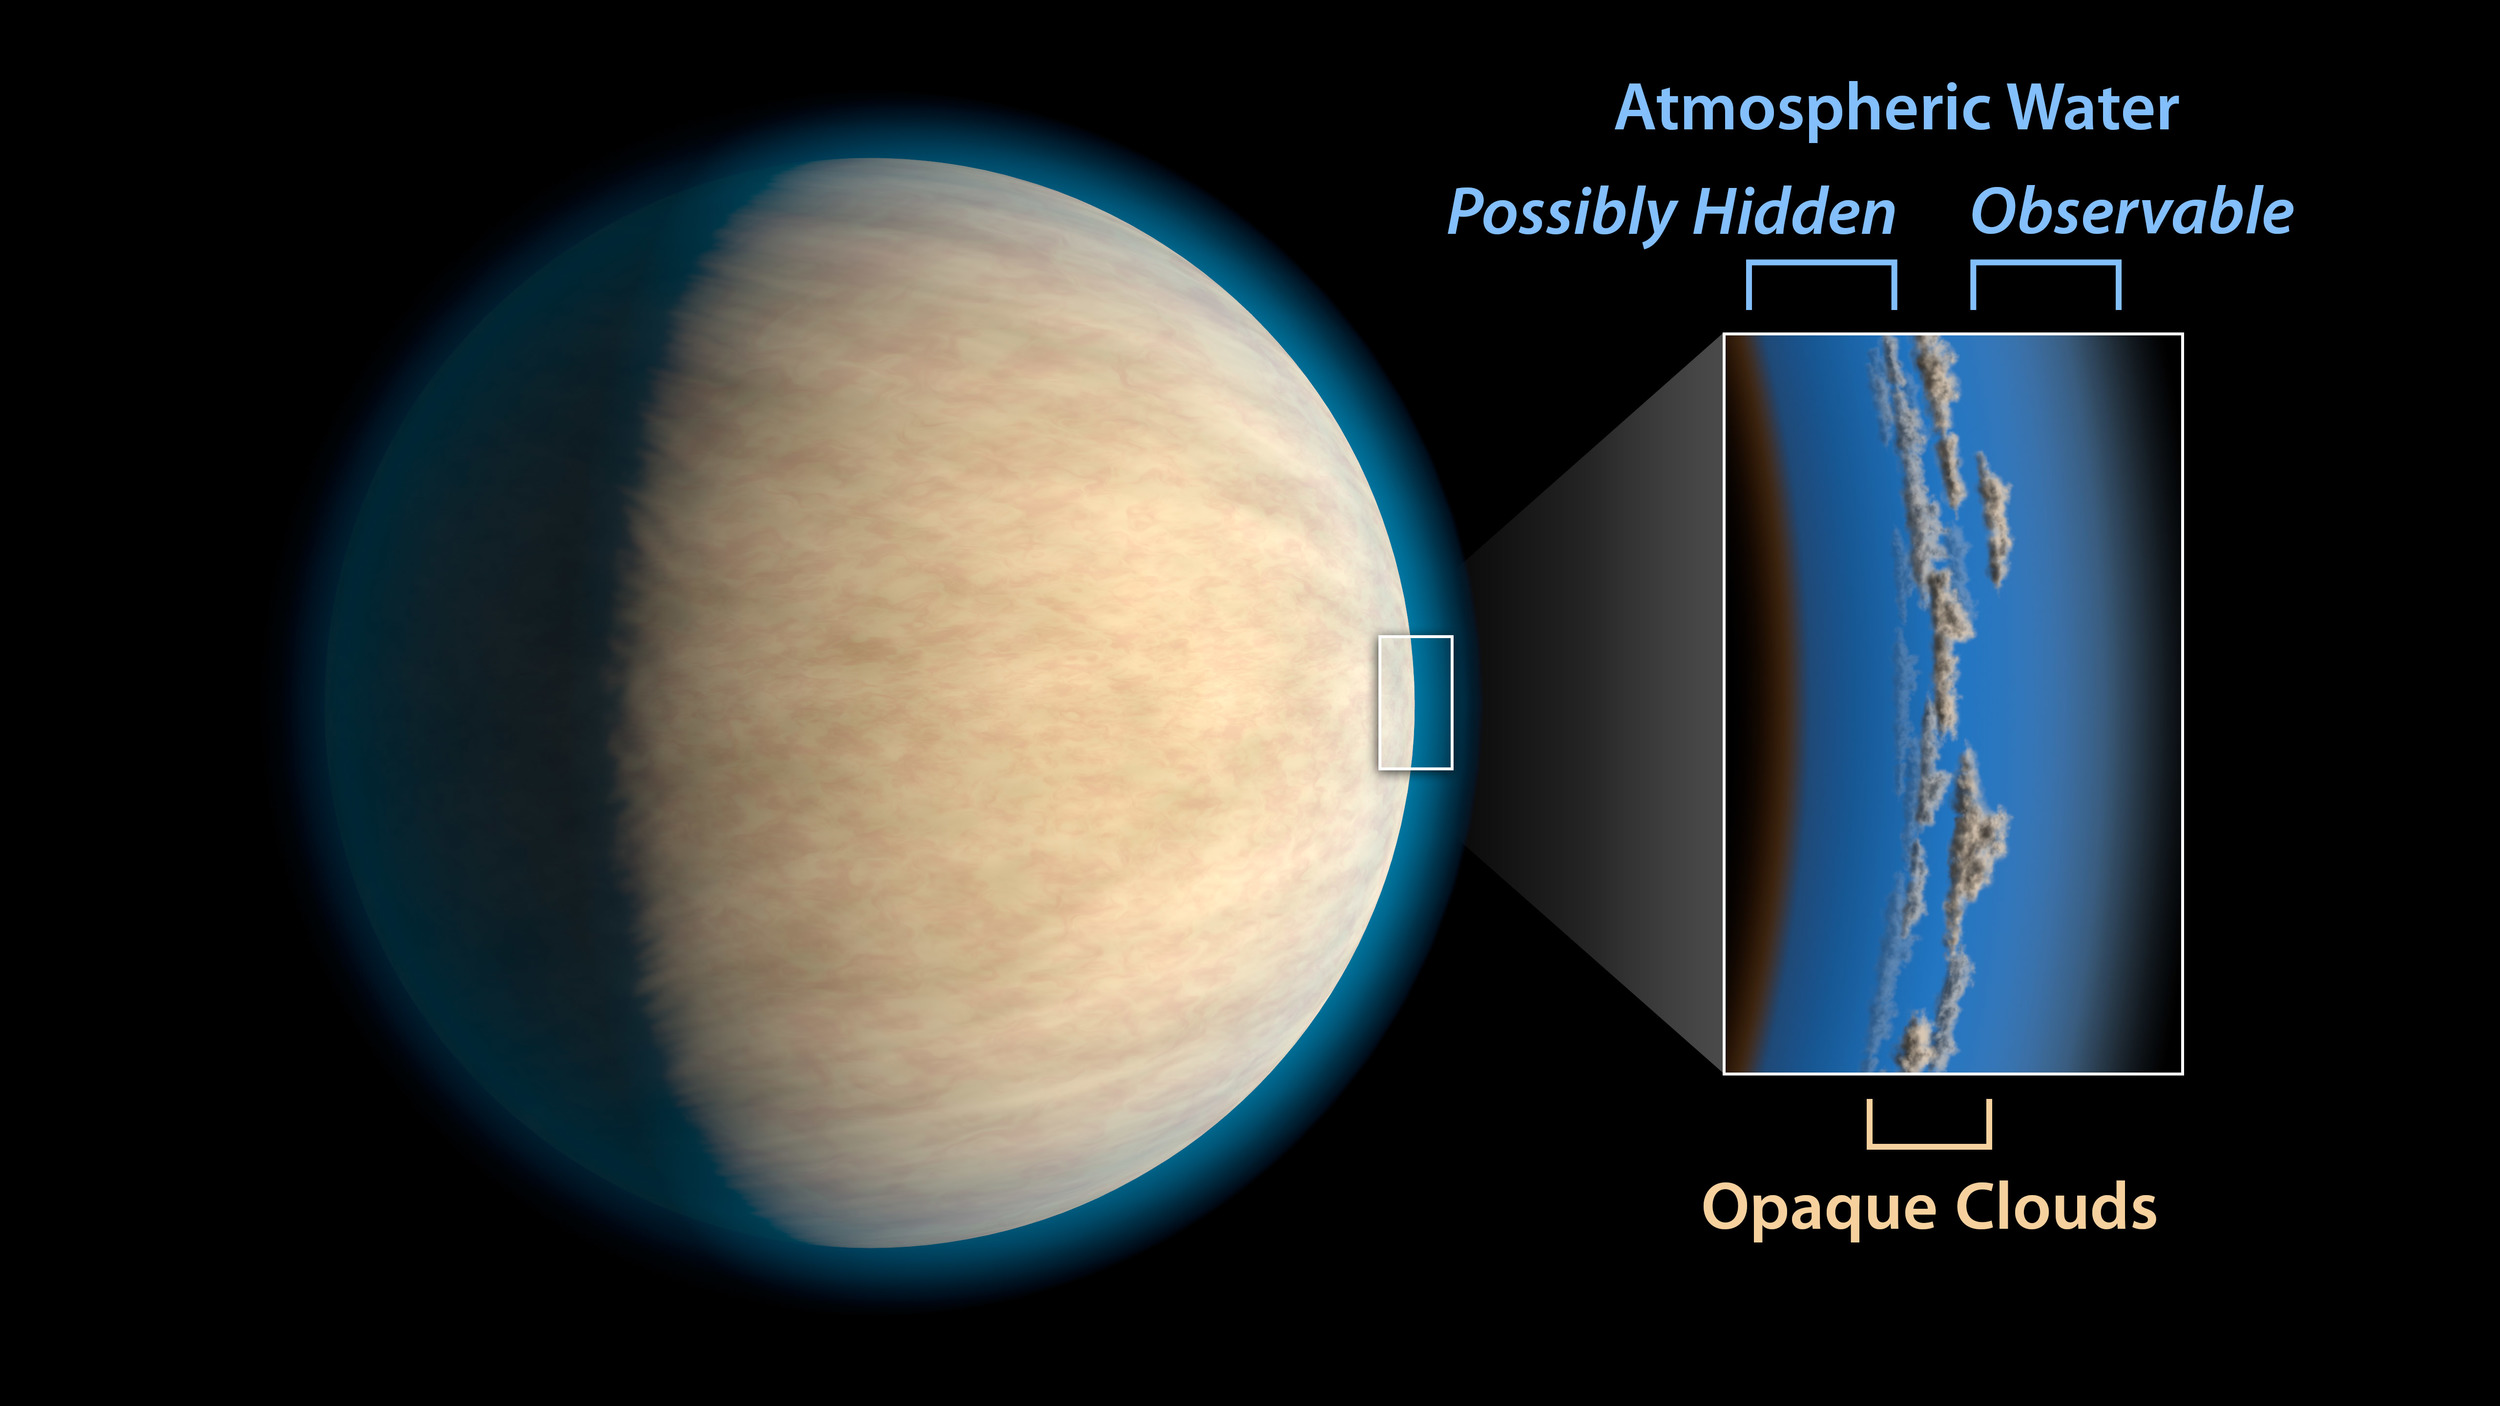 Hot Jupiters, exoplanets around the same size as Jupiter that orbit very closely to their stars, often have cloud or haze layers in their atmospheres. This may prevent space telescopes from detecting atmospheric water that lies beneath the clouds, according to a study in the Astrophysical Journal. – Image Credits: NASA/JPL-Caltech